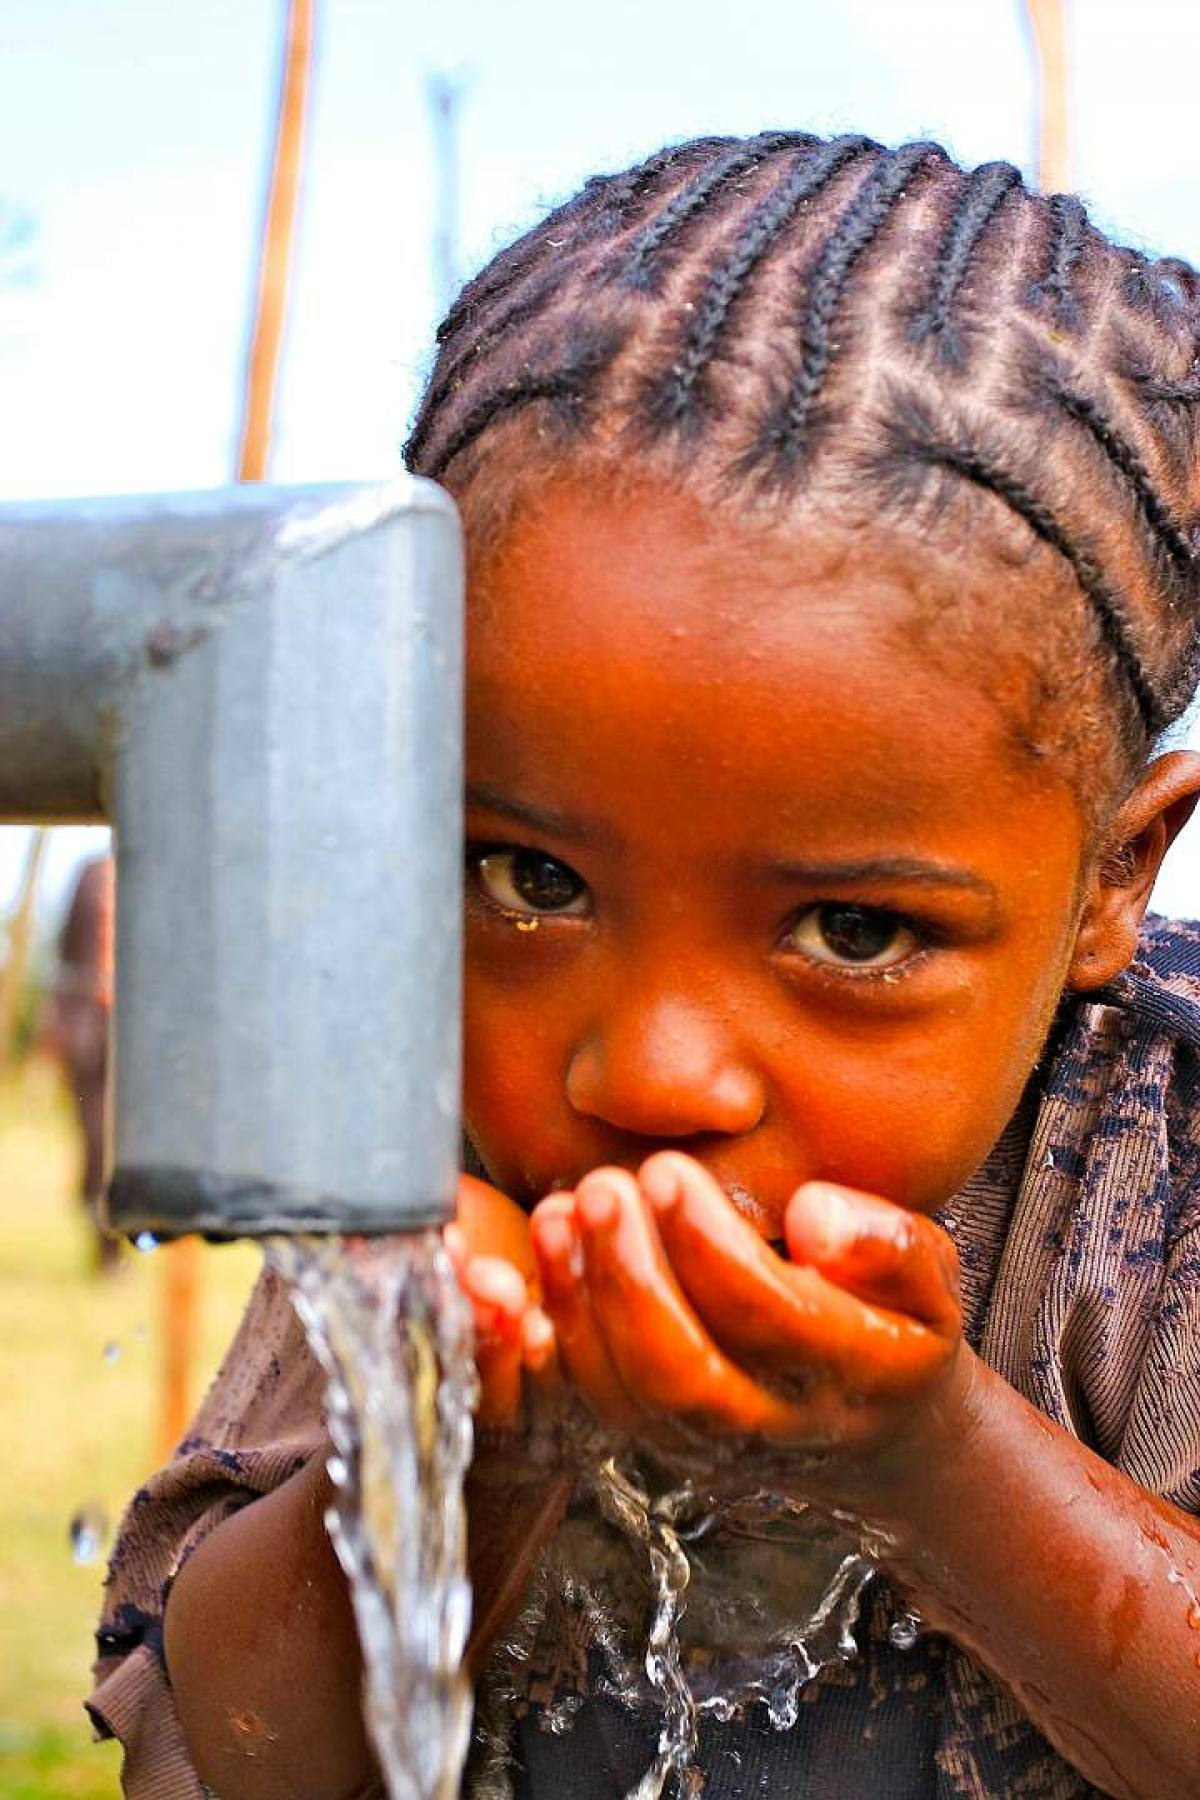 Partnered Campaign - Clean Water & Sanitation